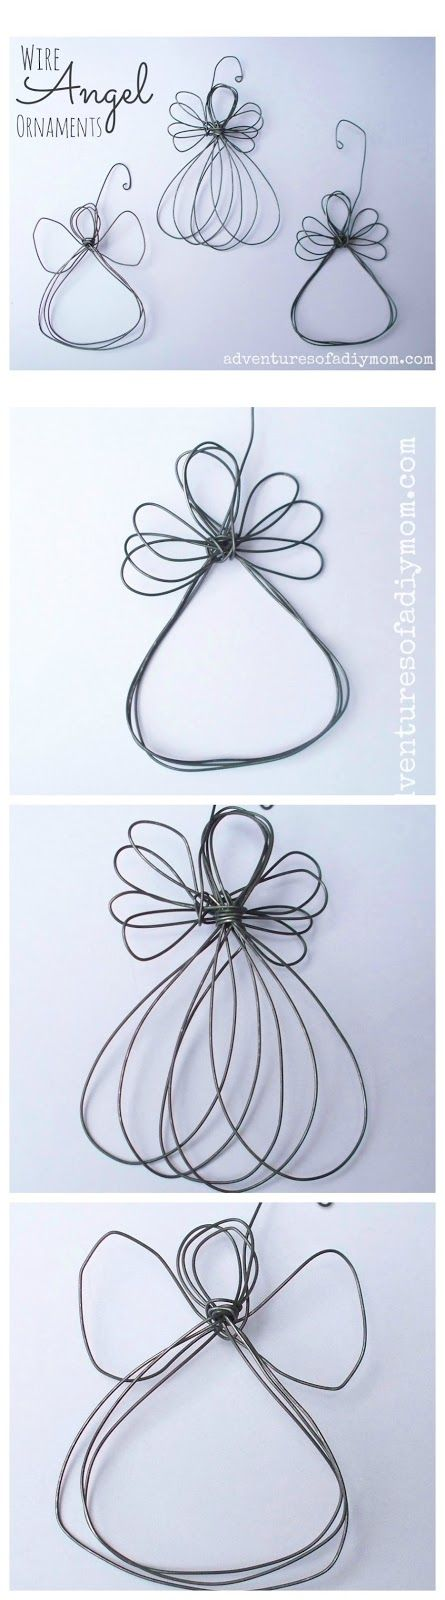 Learn how to make an Angel ornament out of wire as part of the 12 Days of CHRISTmas Ornaments series.                                                                                                                                                                                 More